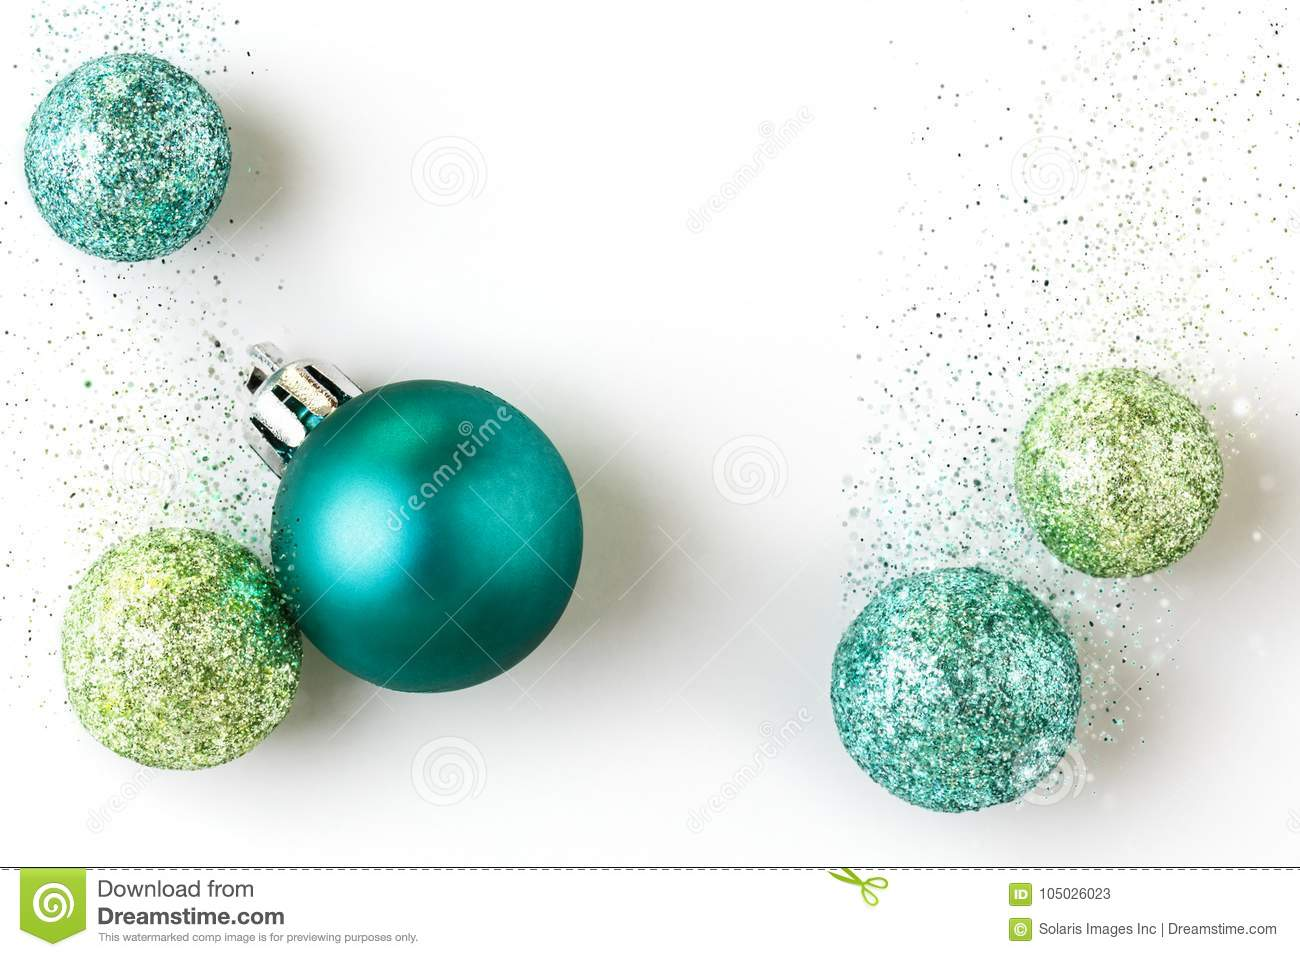 Beautiful, bright, modern Christmas holiday ornaments decorations on white background with luxe glitter effect